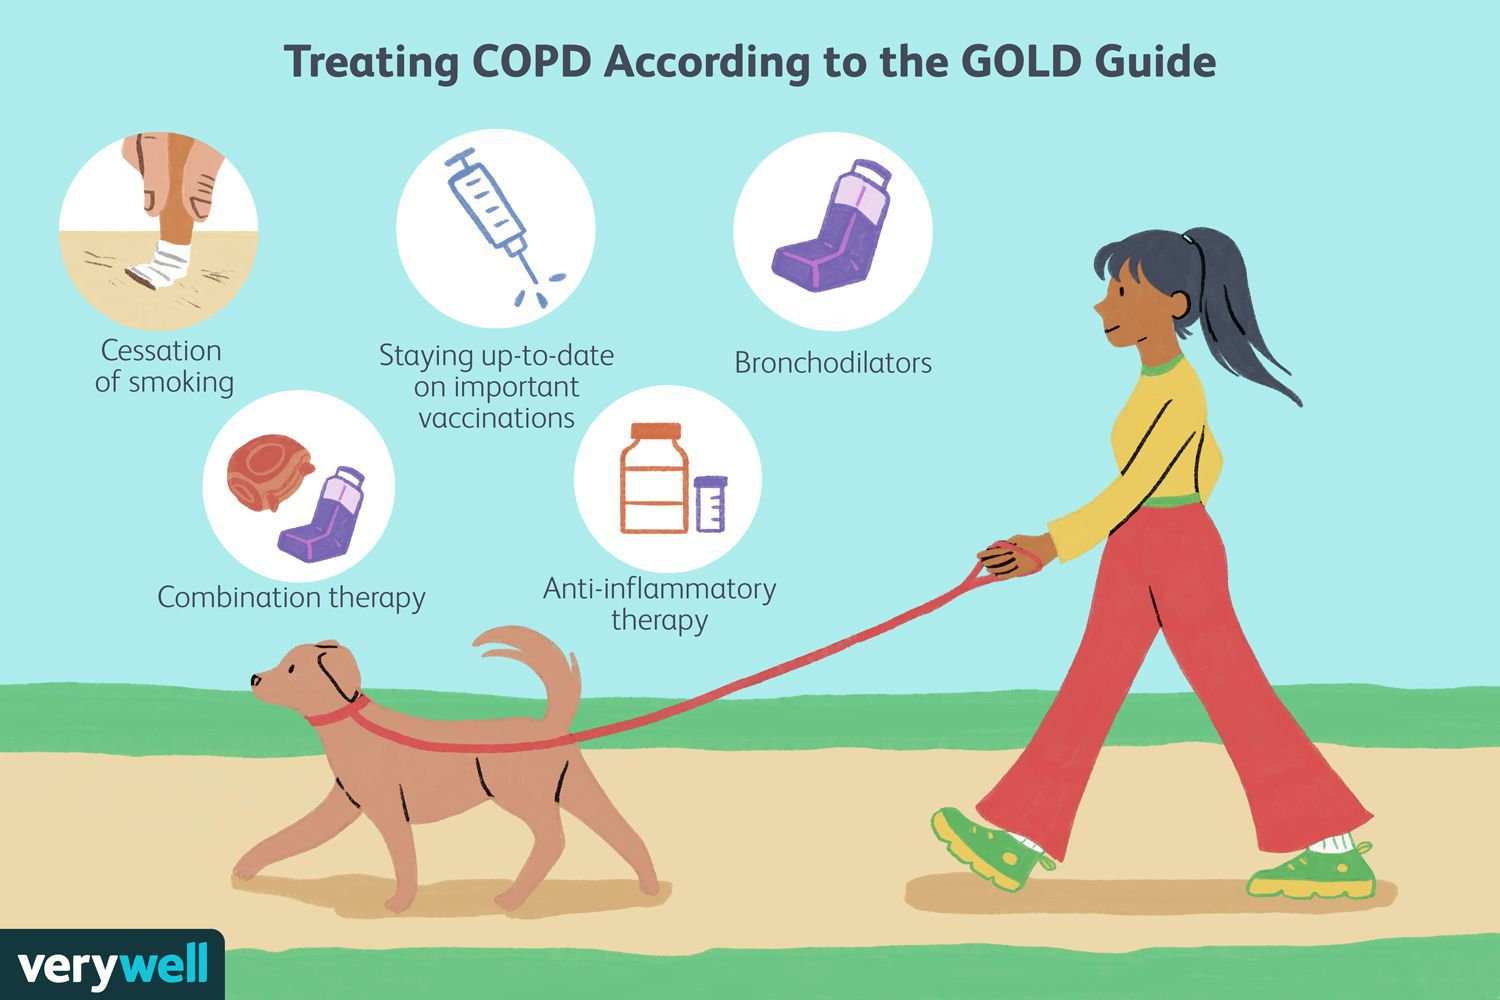 Treating COPD According to the 2020 GOLD Guide